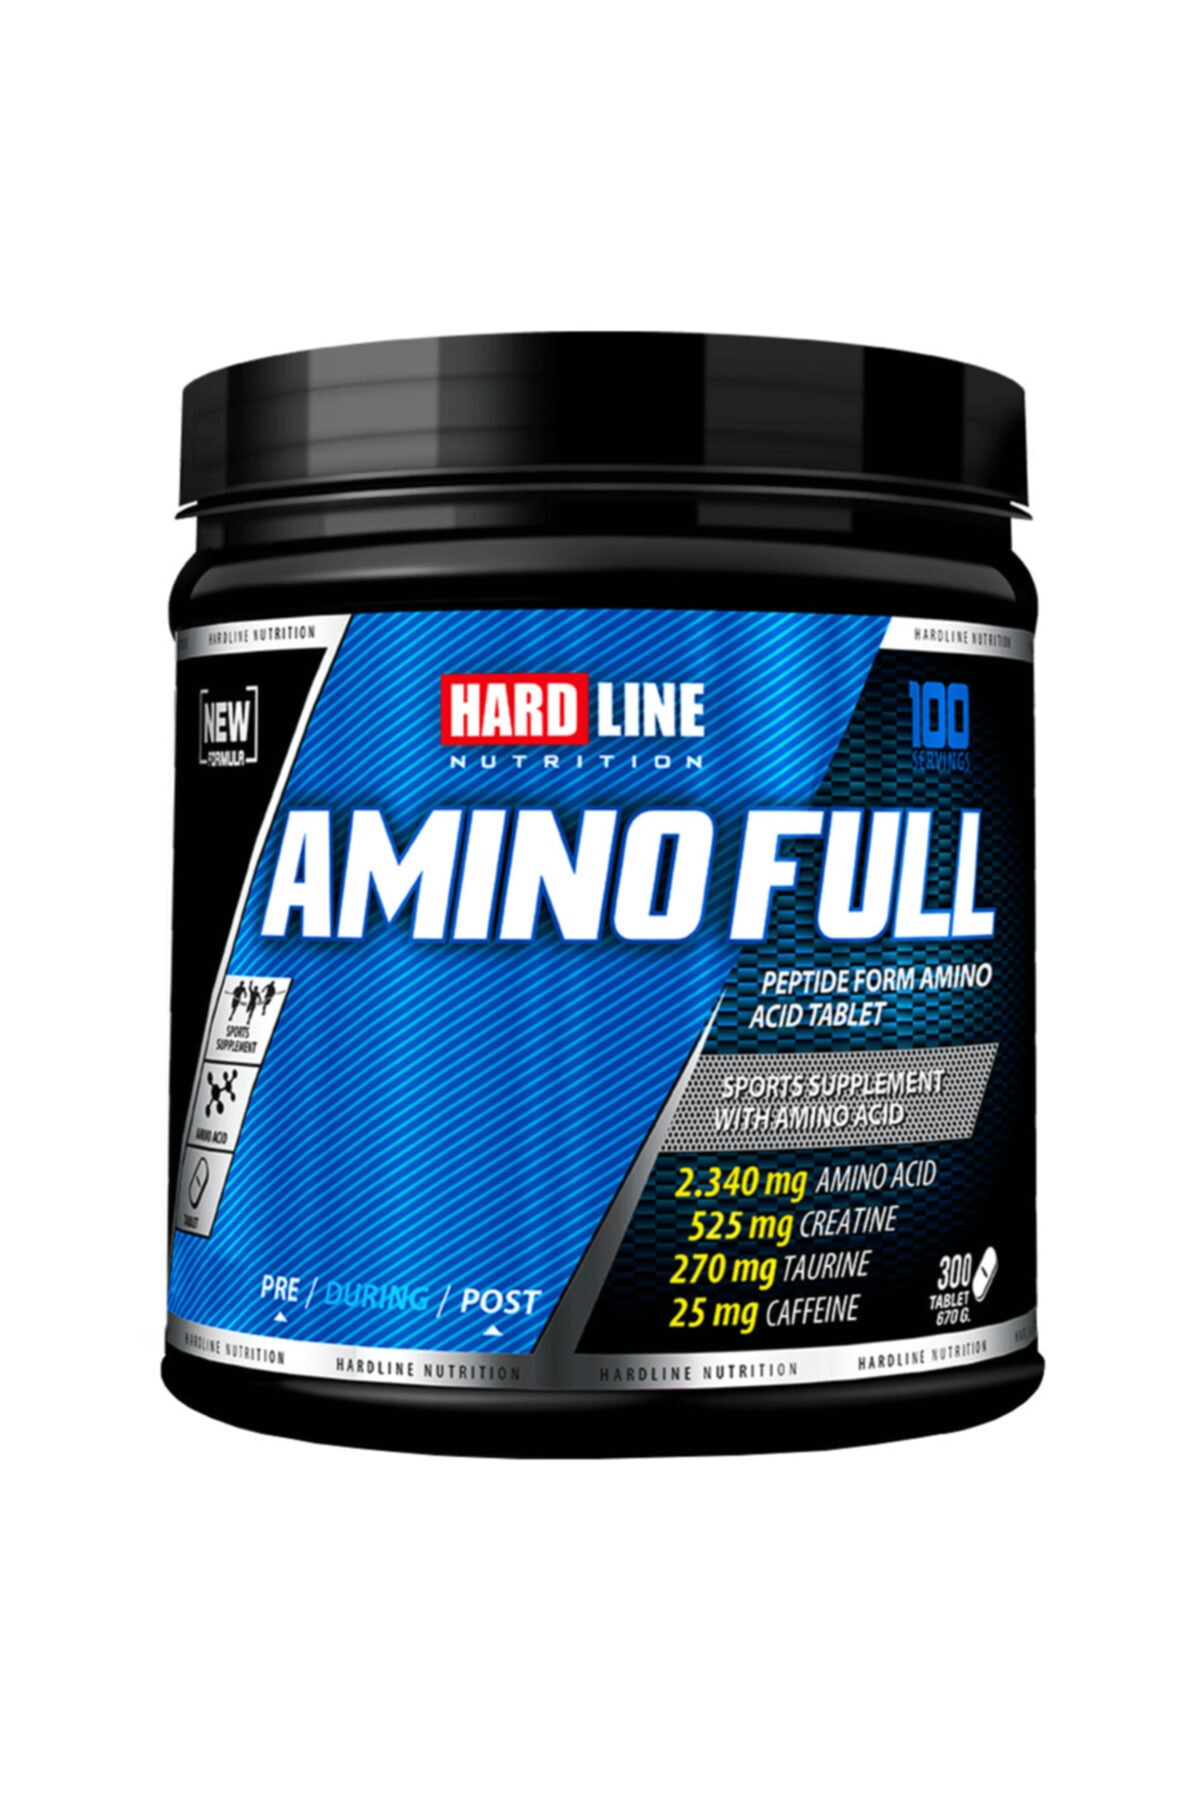 Hardline Amino Full 300 Tablet 1